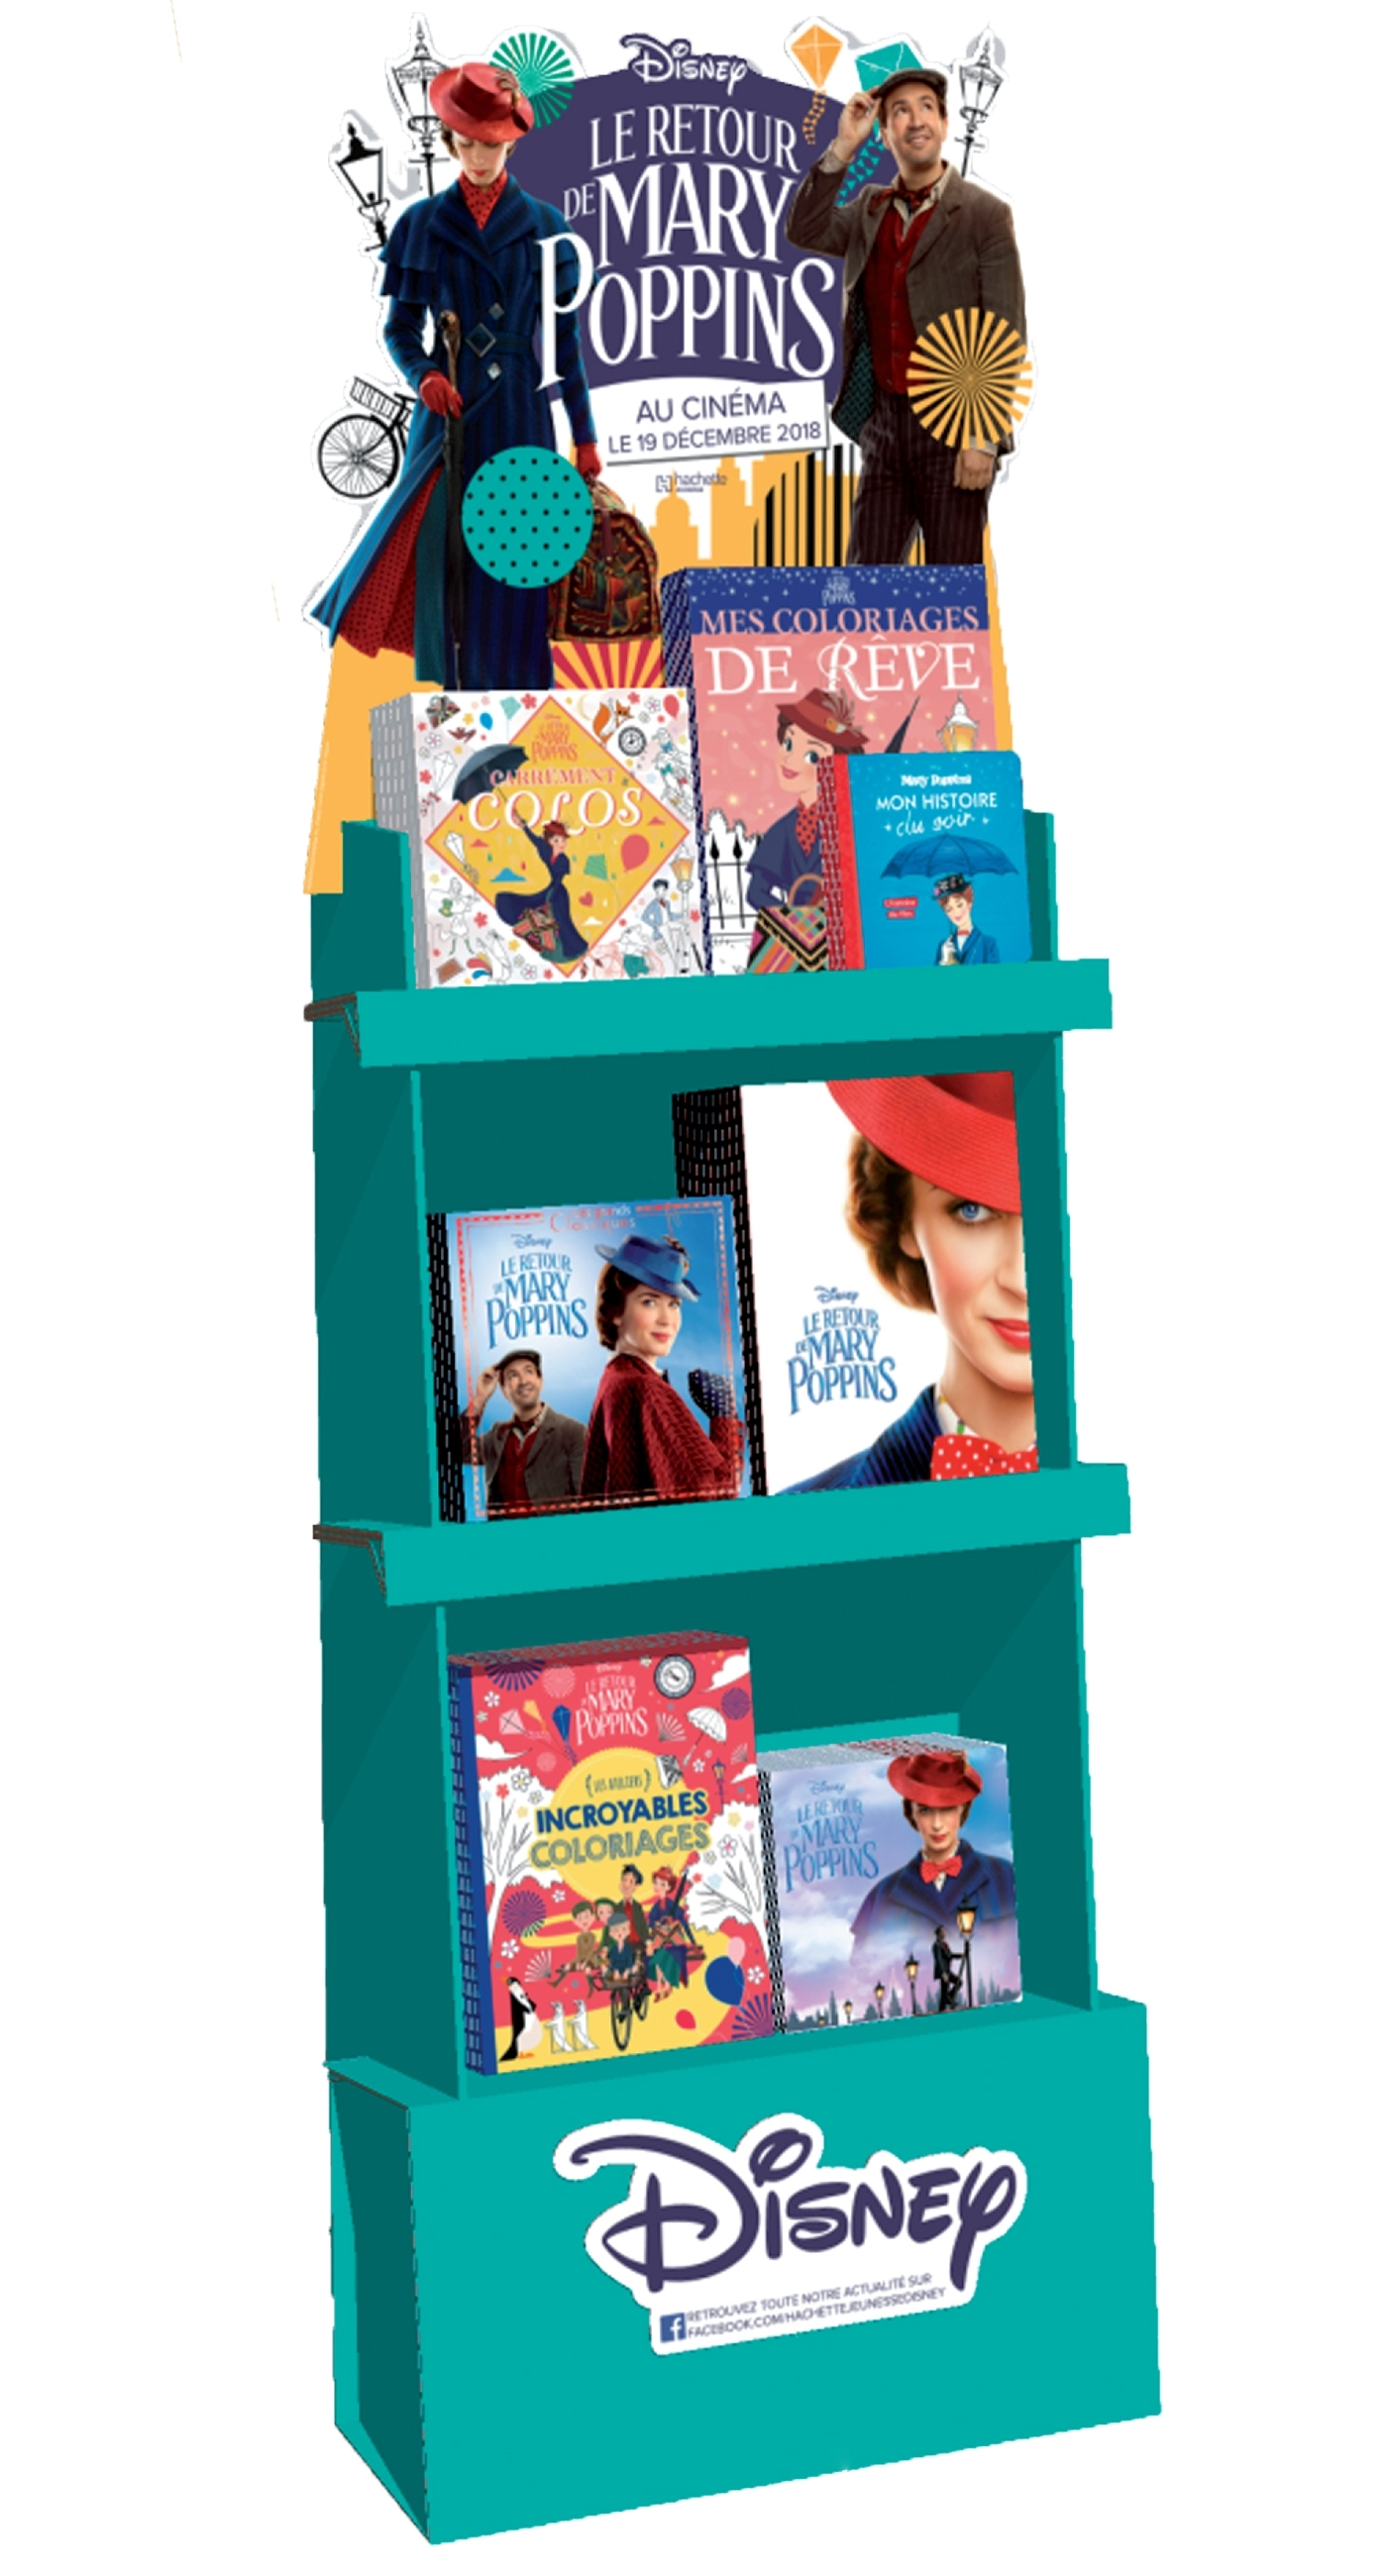 BOX 70 VOL OP MARY POPPINS NOVEMBRE 2018